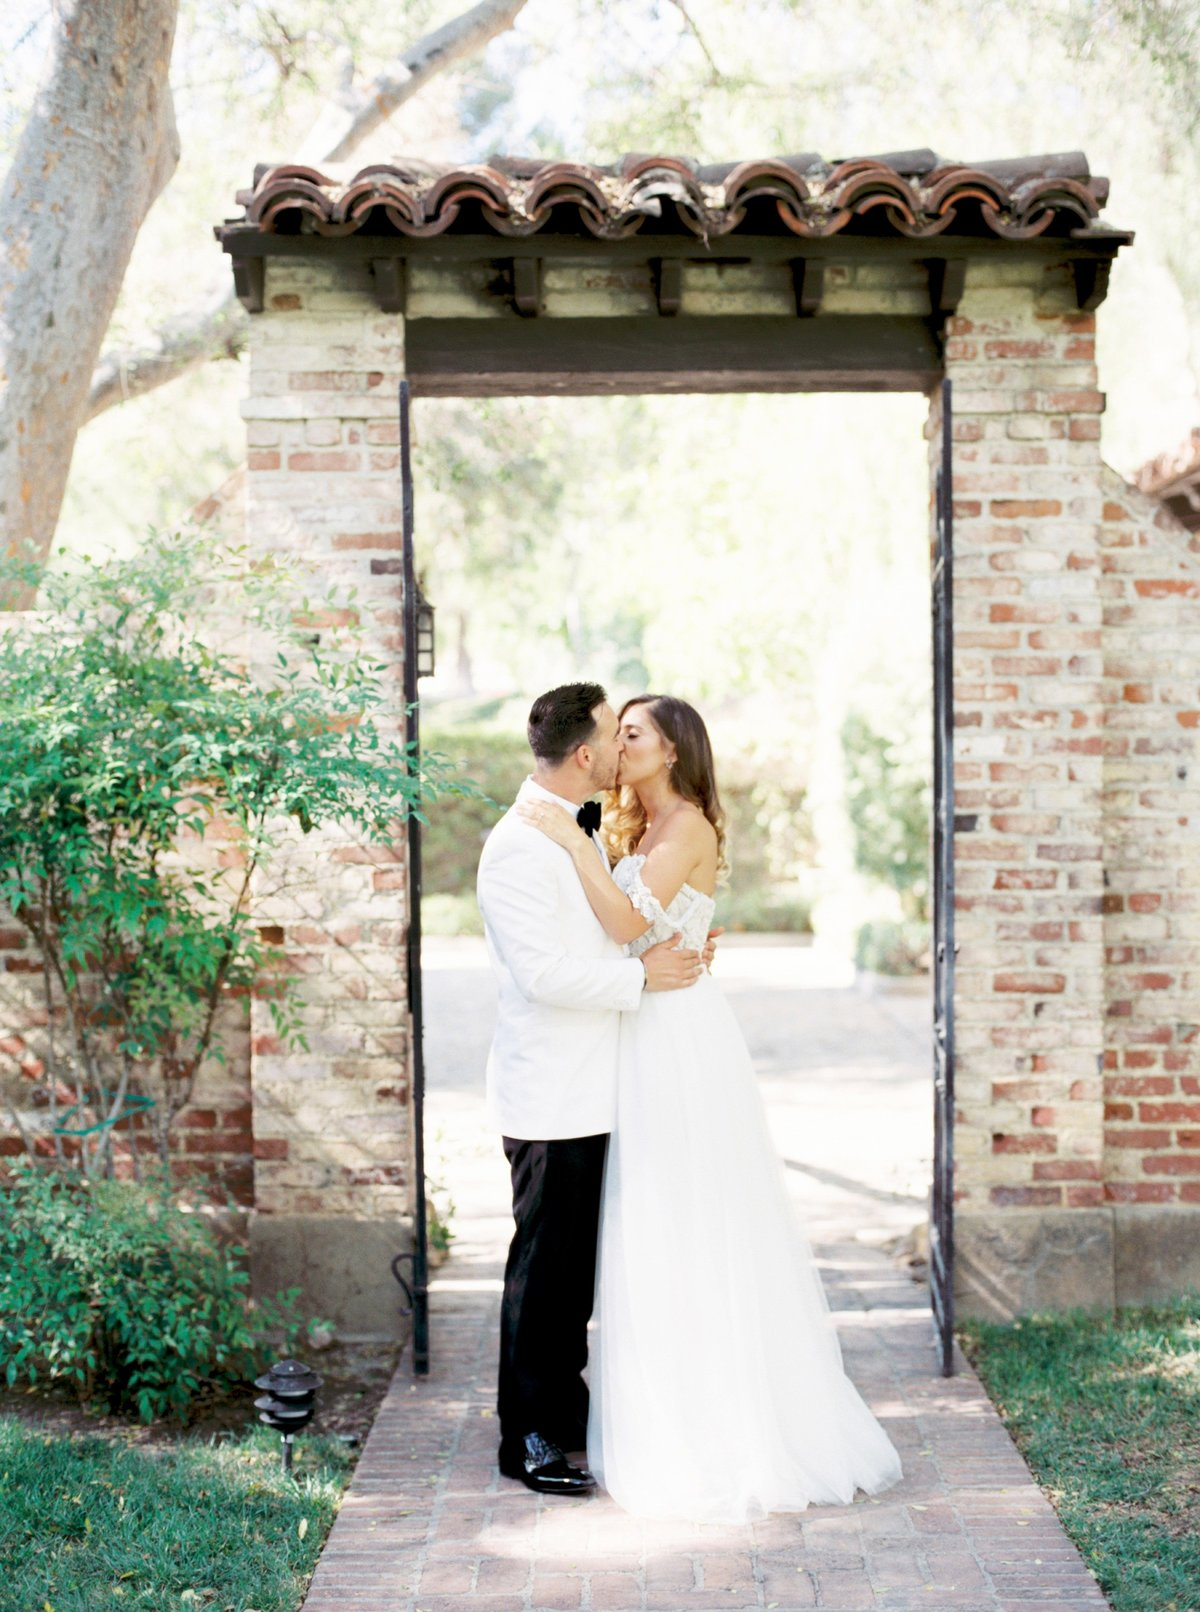 nicoleclareyphotography_dana+edaan_los-angeles_wedding_0009